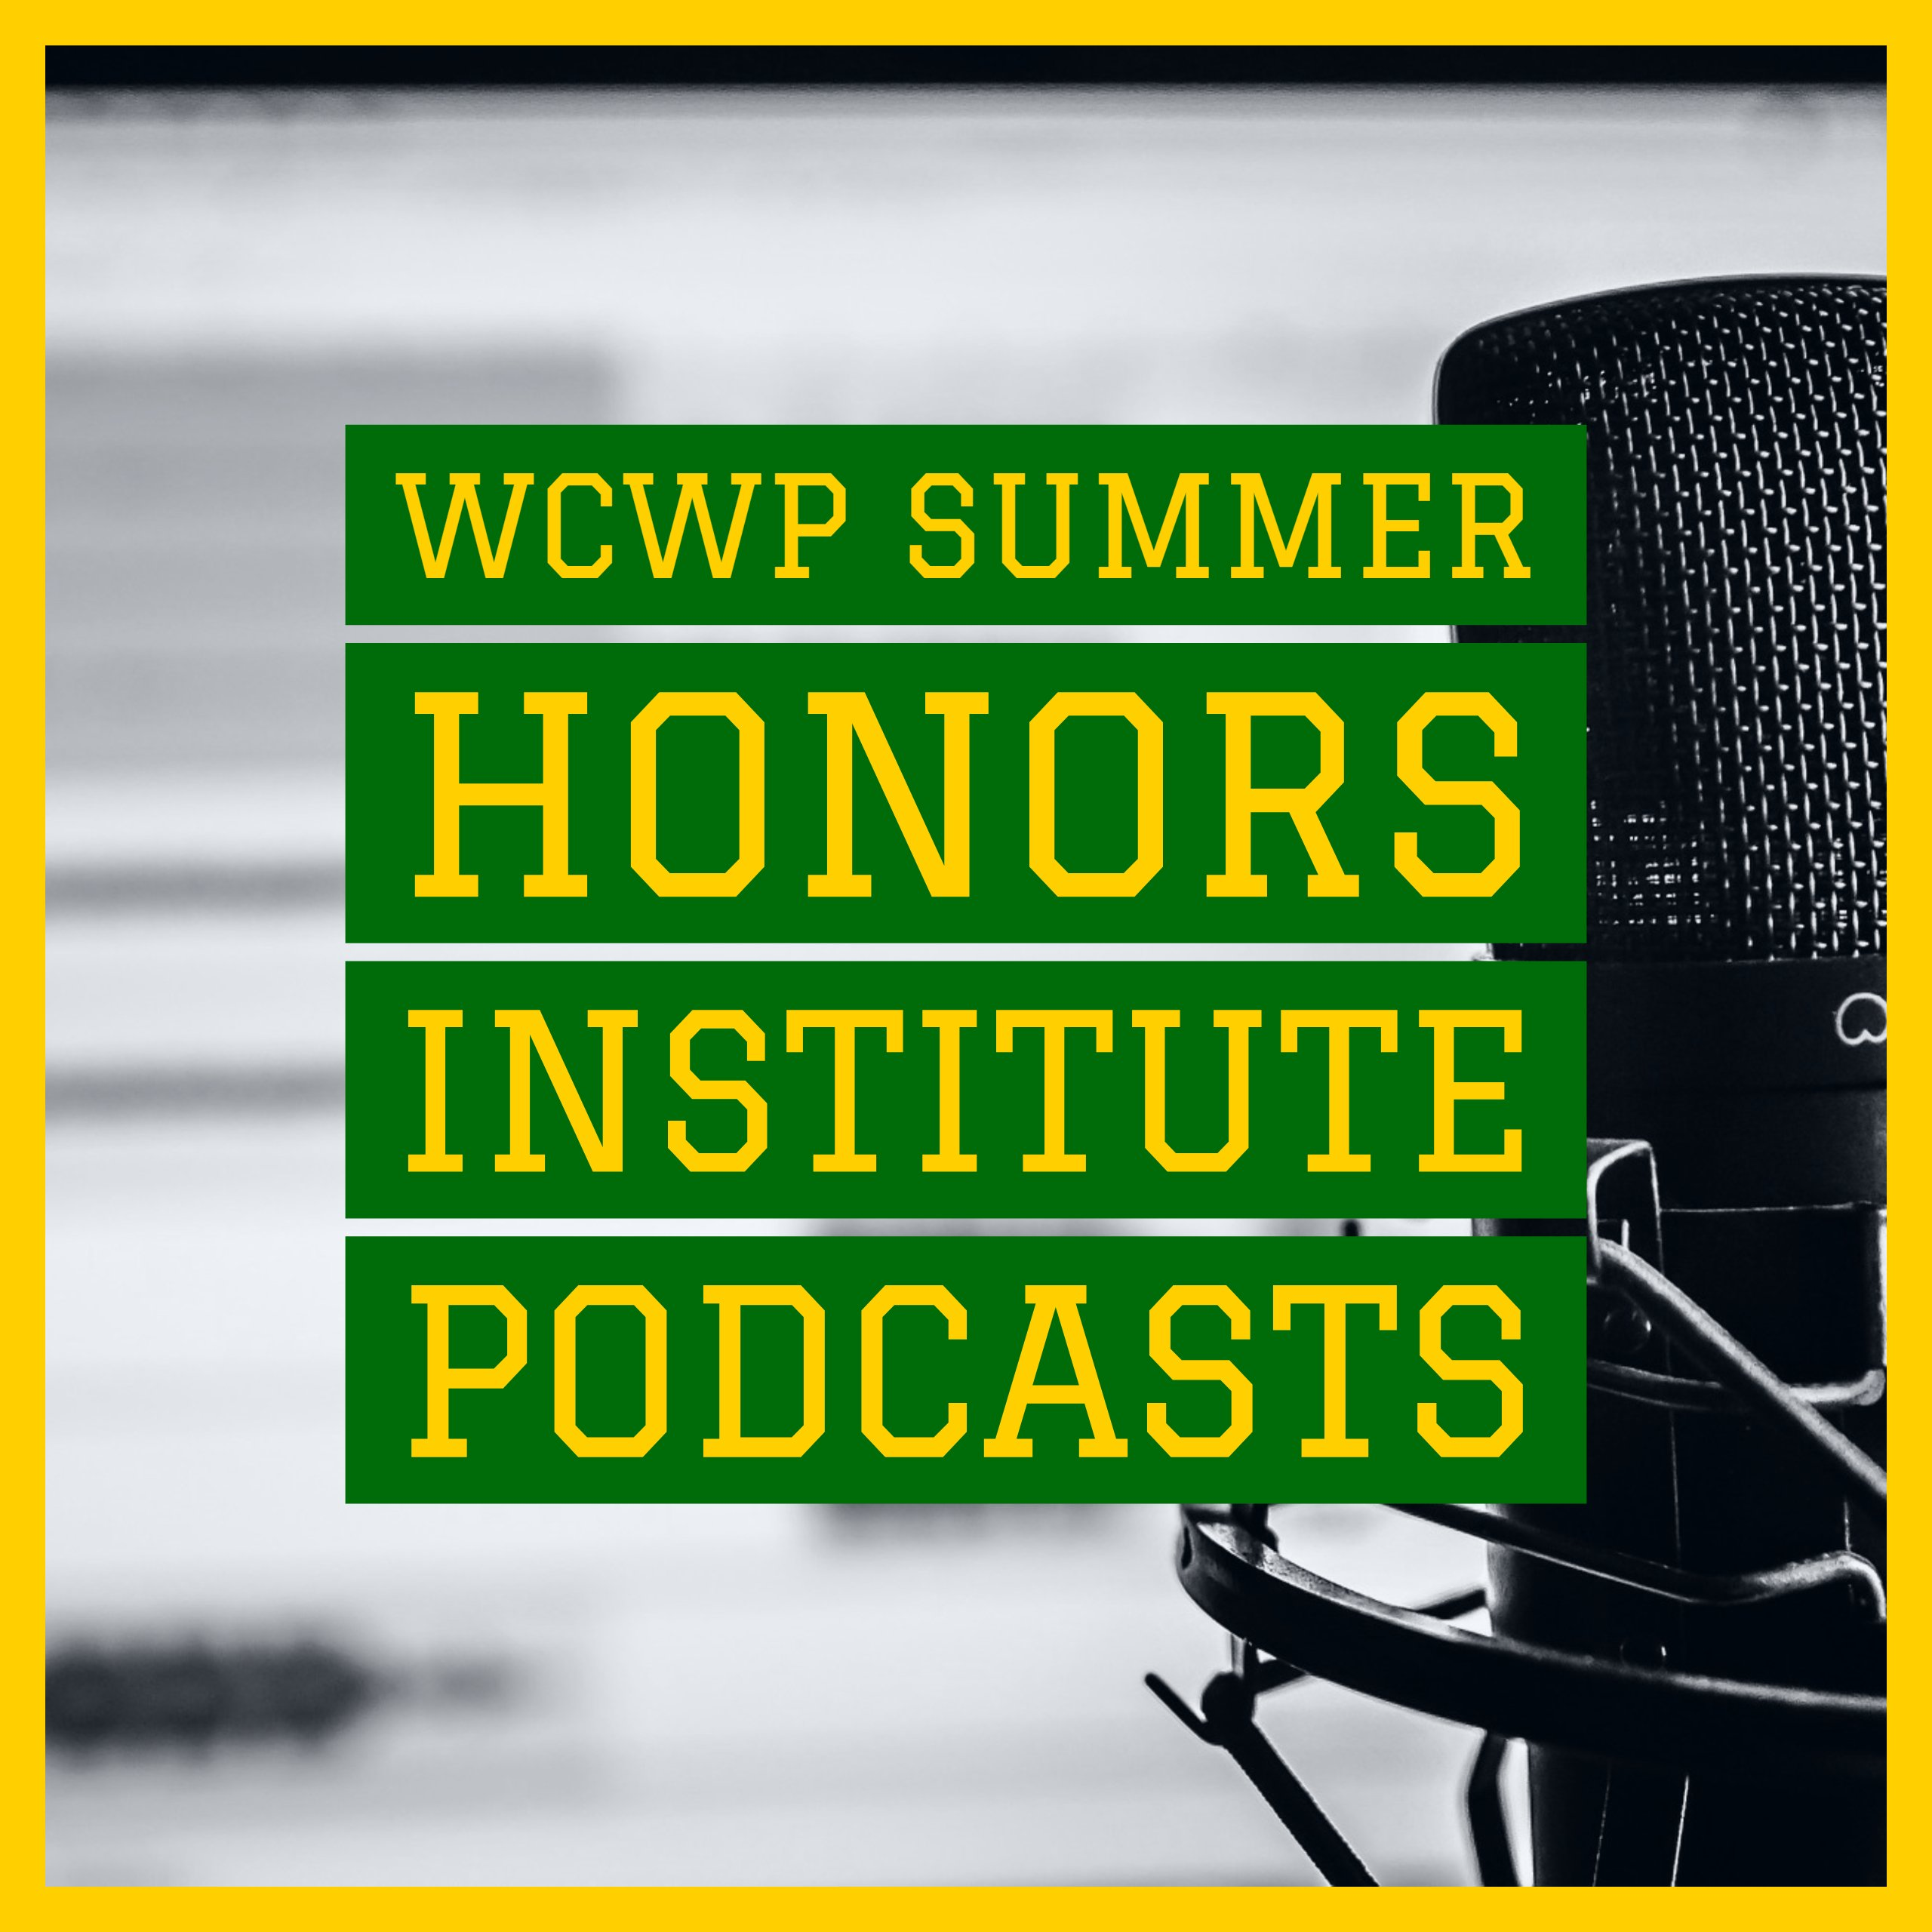 WCWP Summer Honors Institute Podcasts